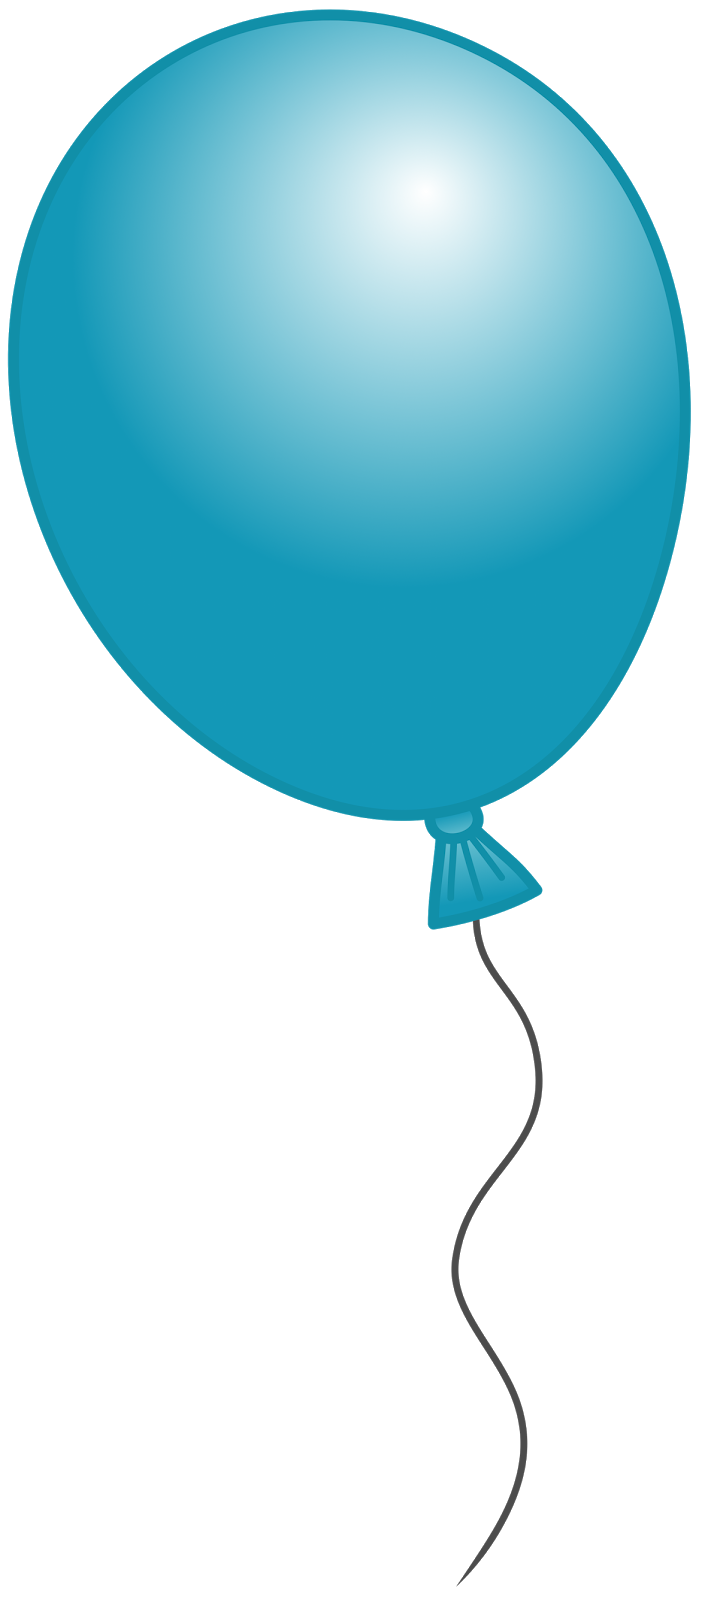 free balloon clip art pictures - photo #30